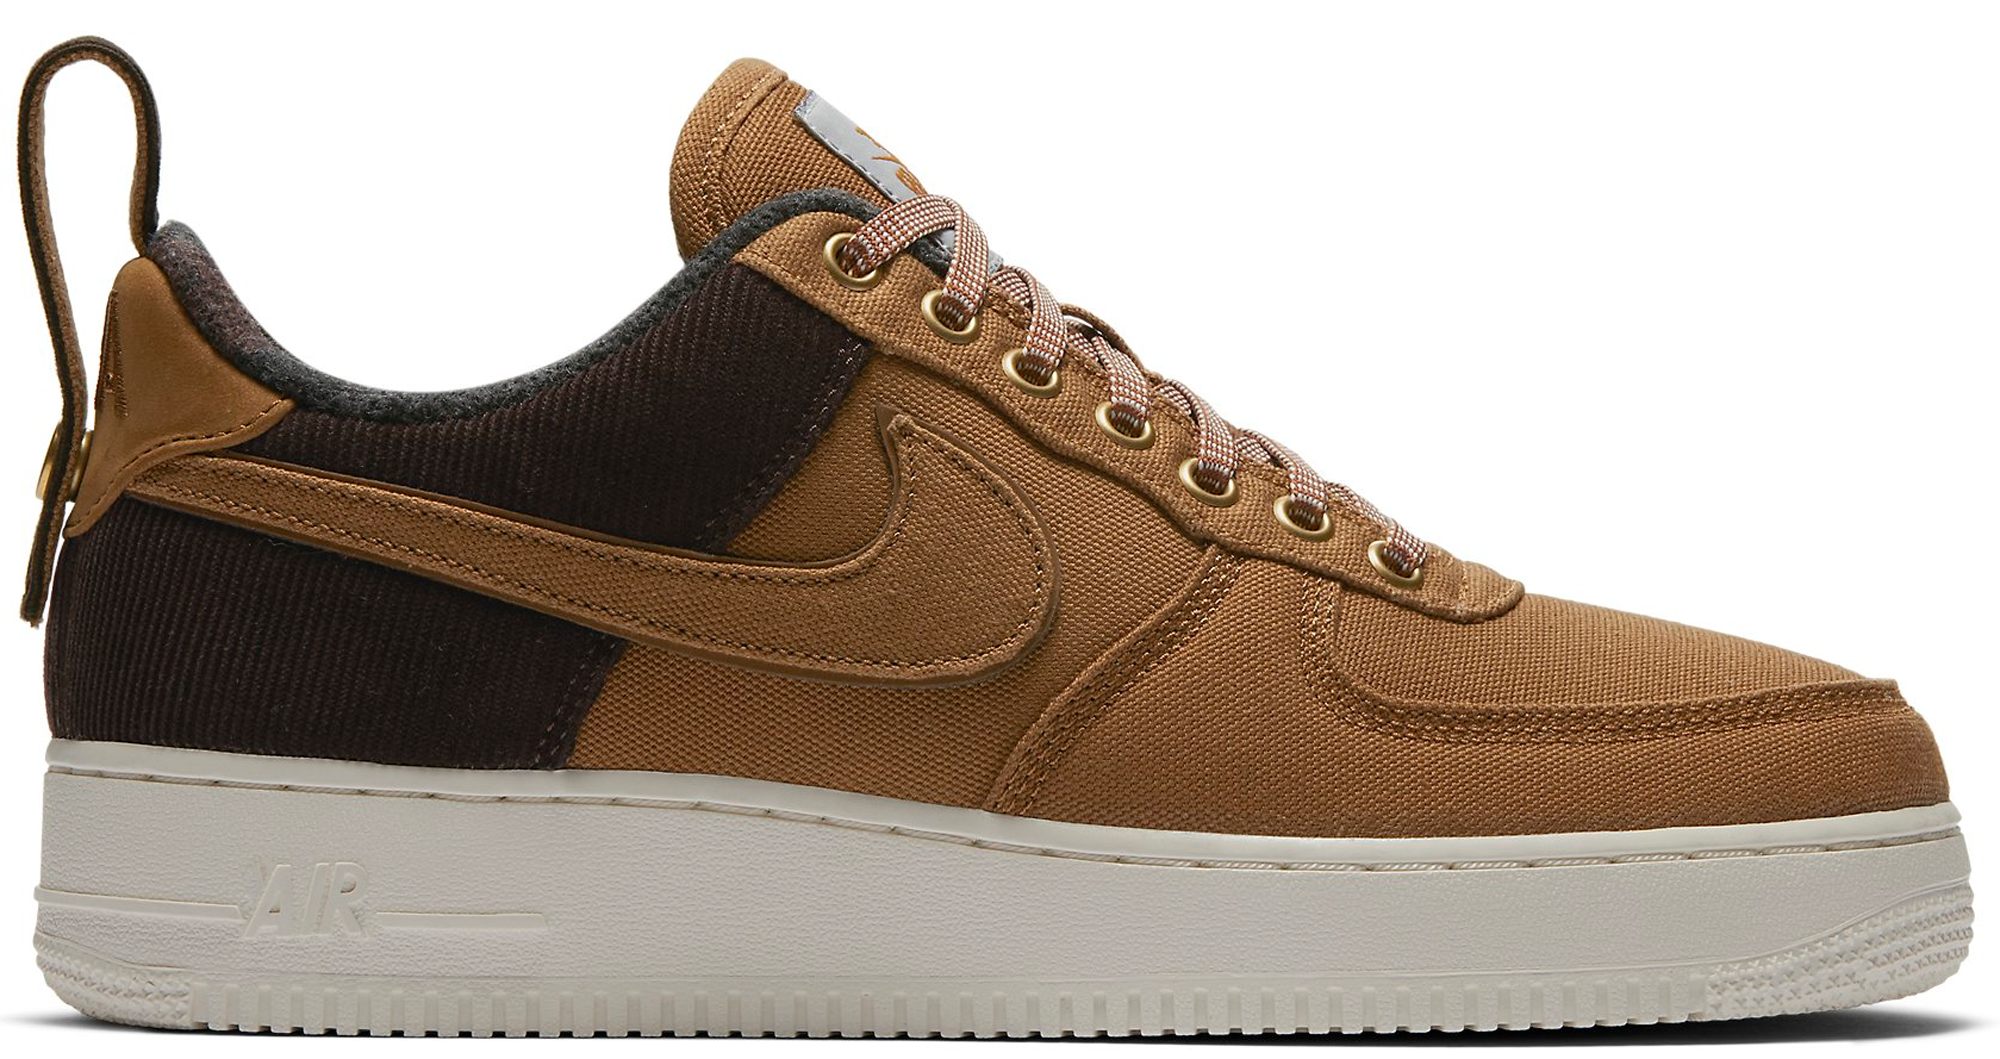 Air Force 1 Low Carhartt WIP Ale Brown